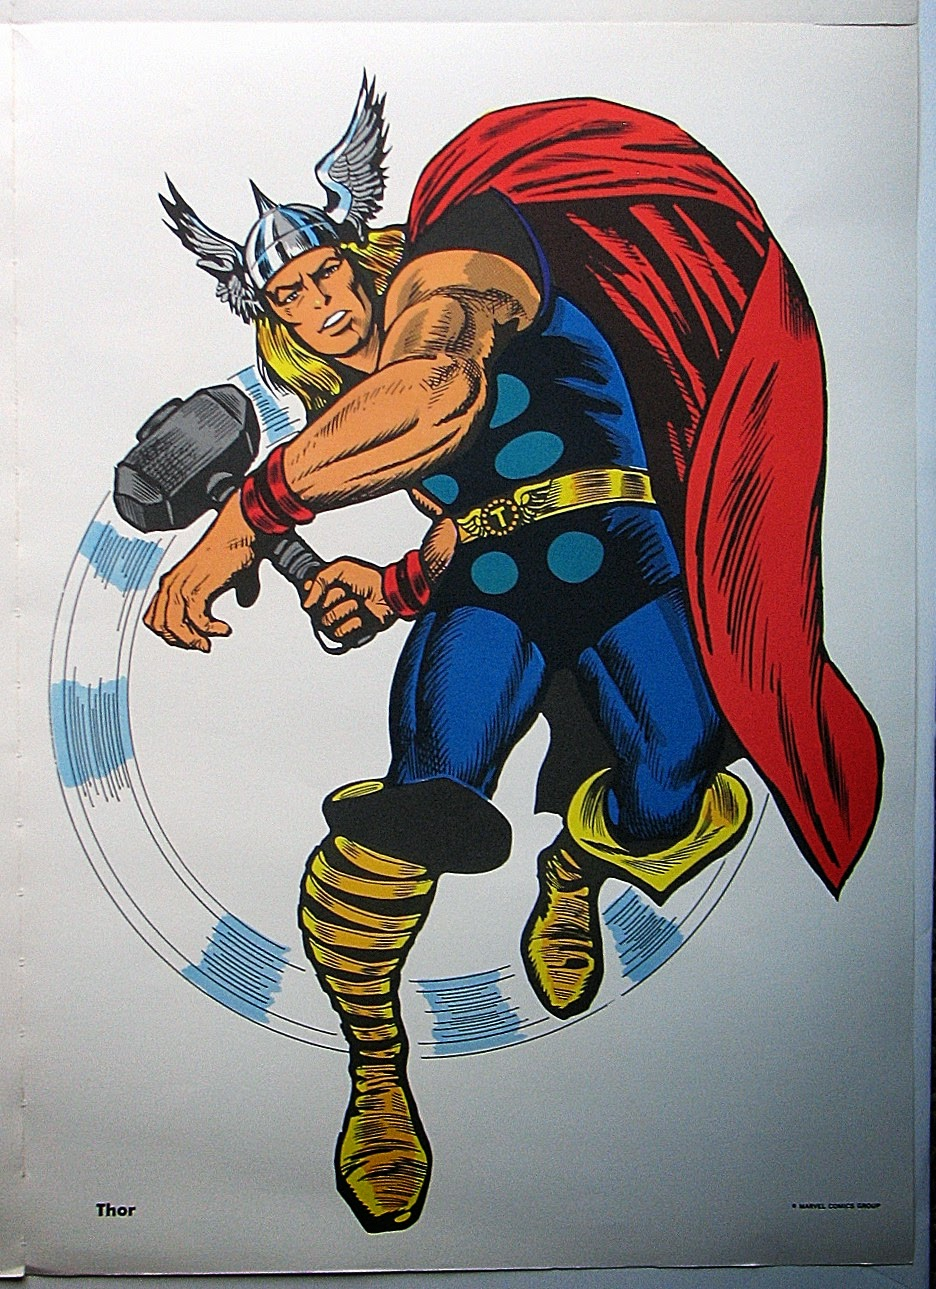 O PODEROSO THOR (THE MIGHTY THOR)